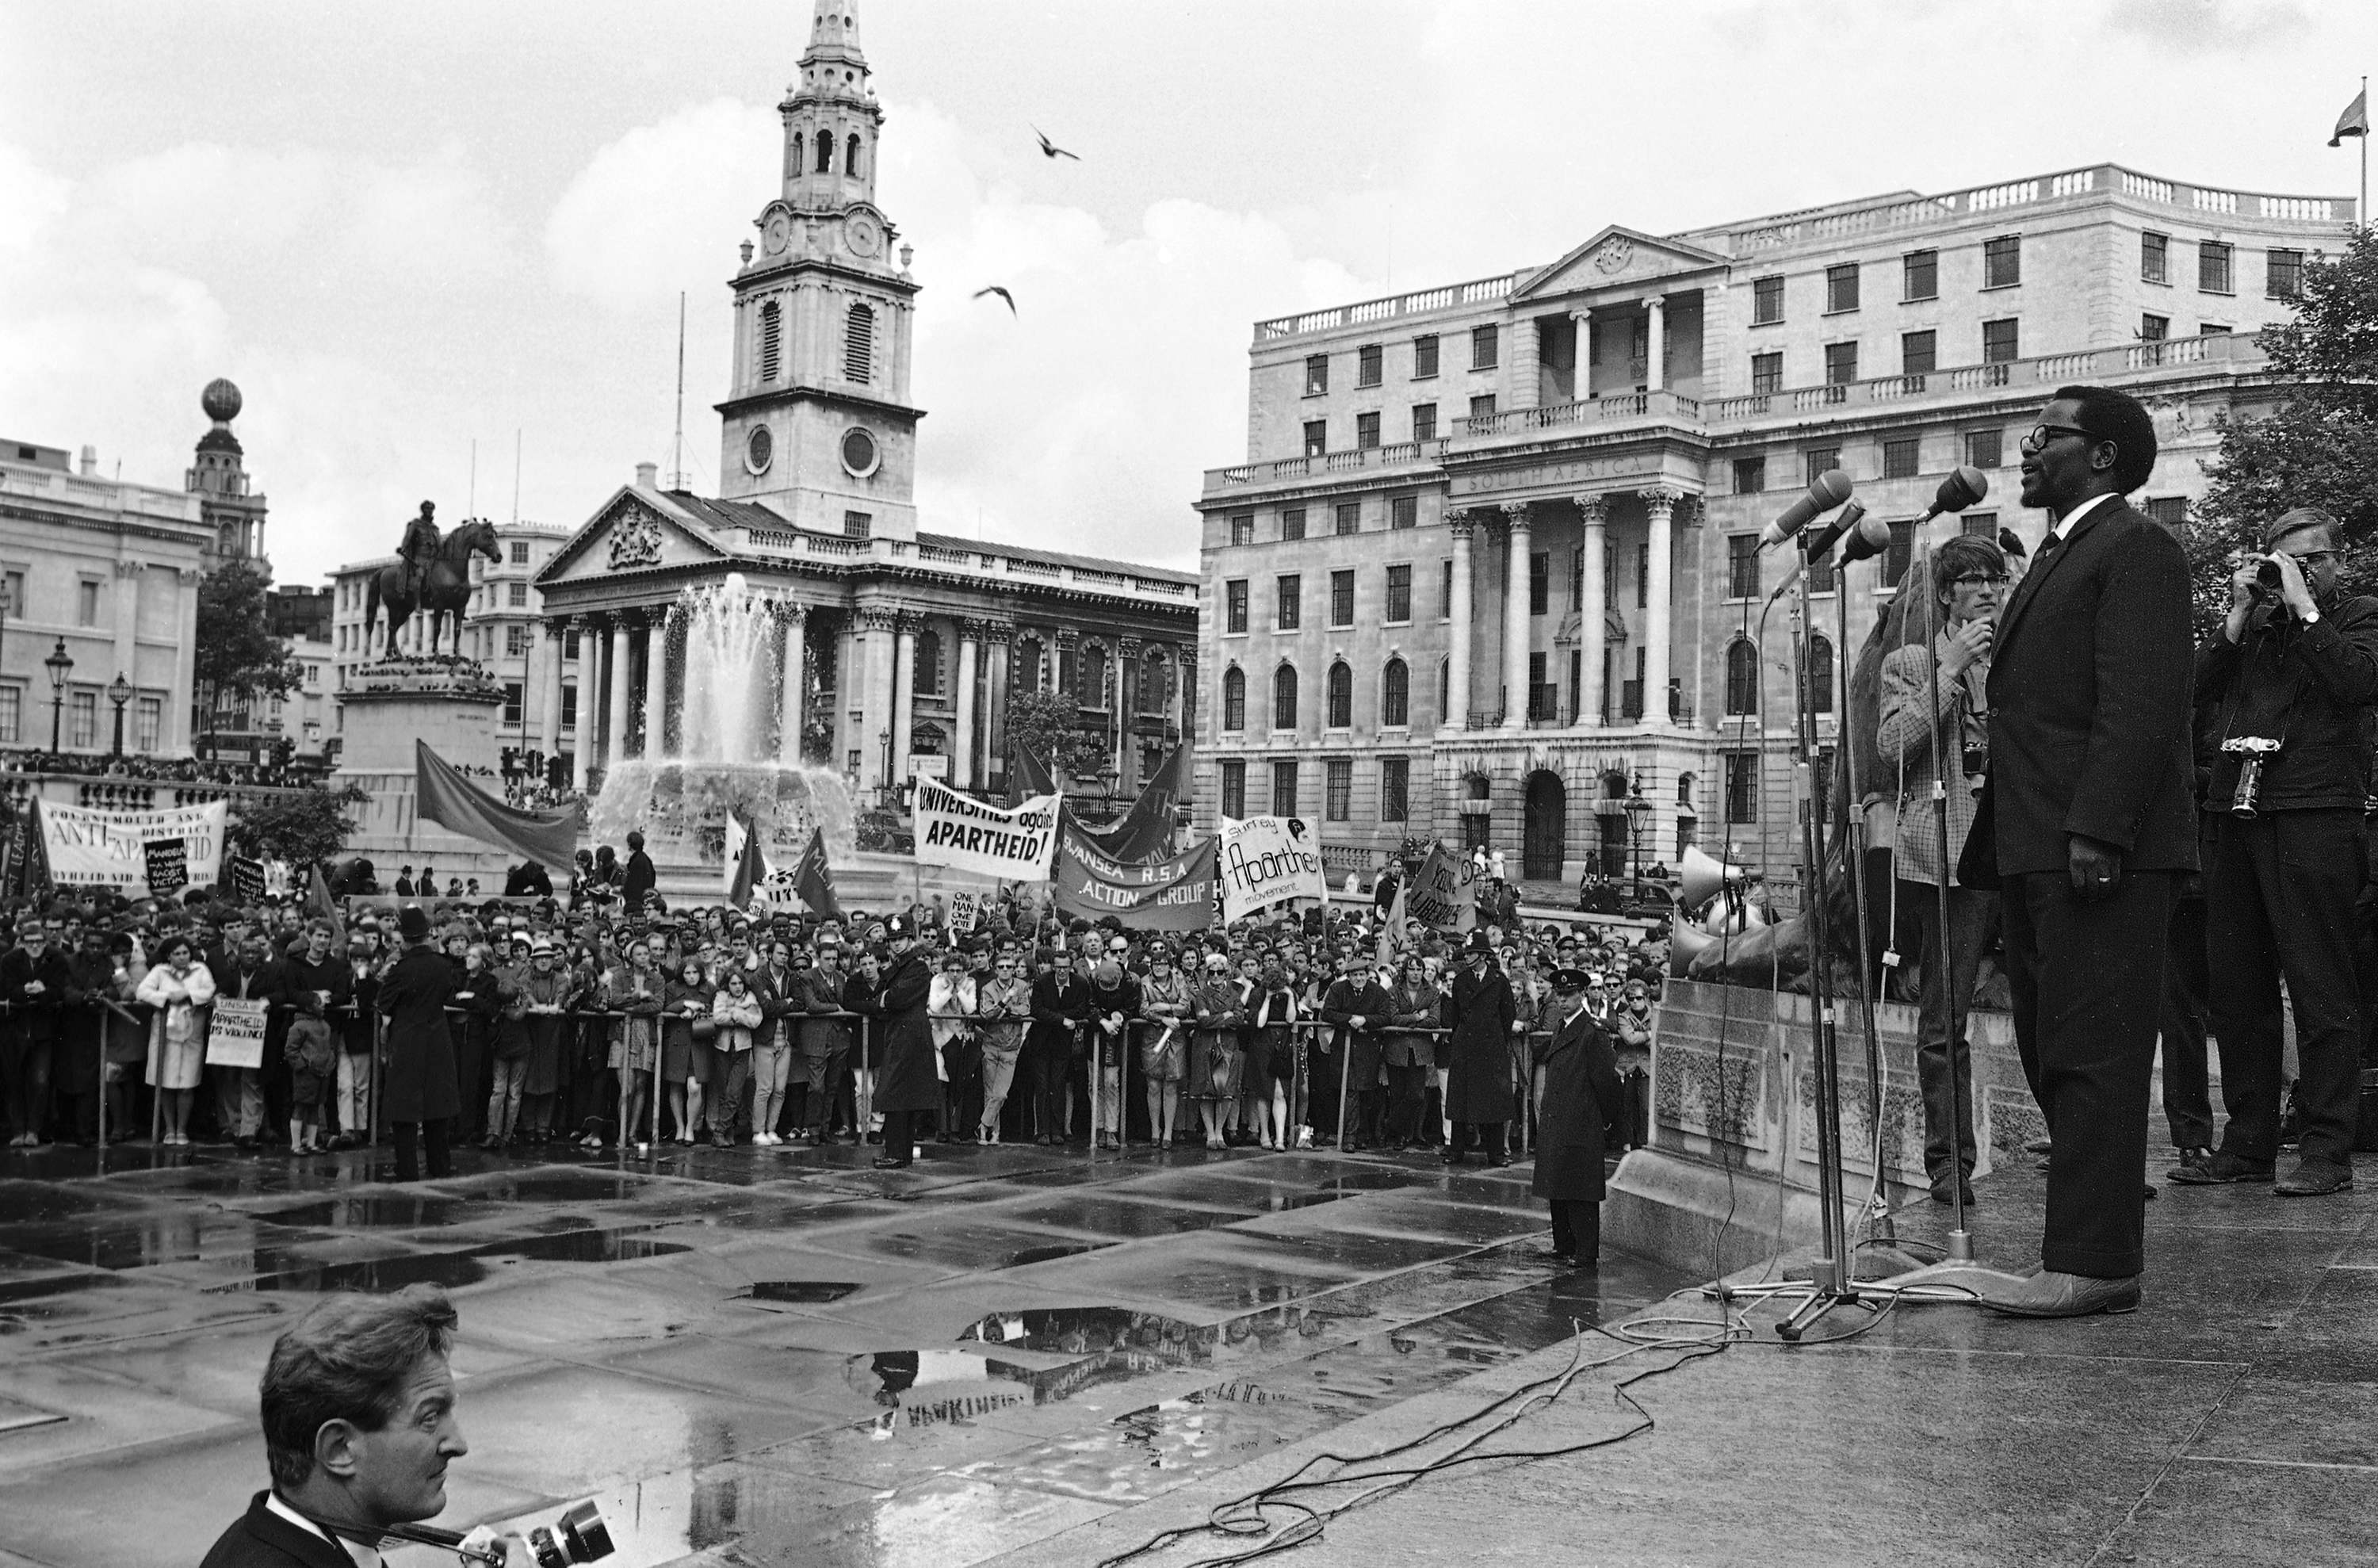 100 years of Protesting at Trafalgar Square (Part 2) - Flashbak